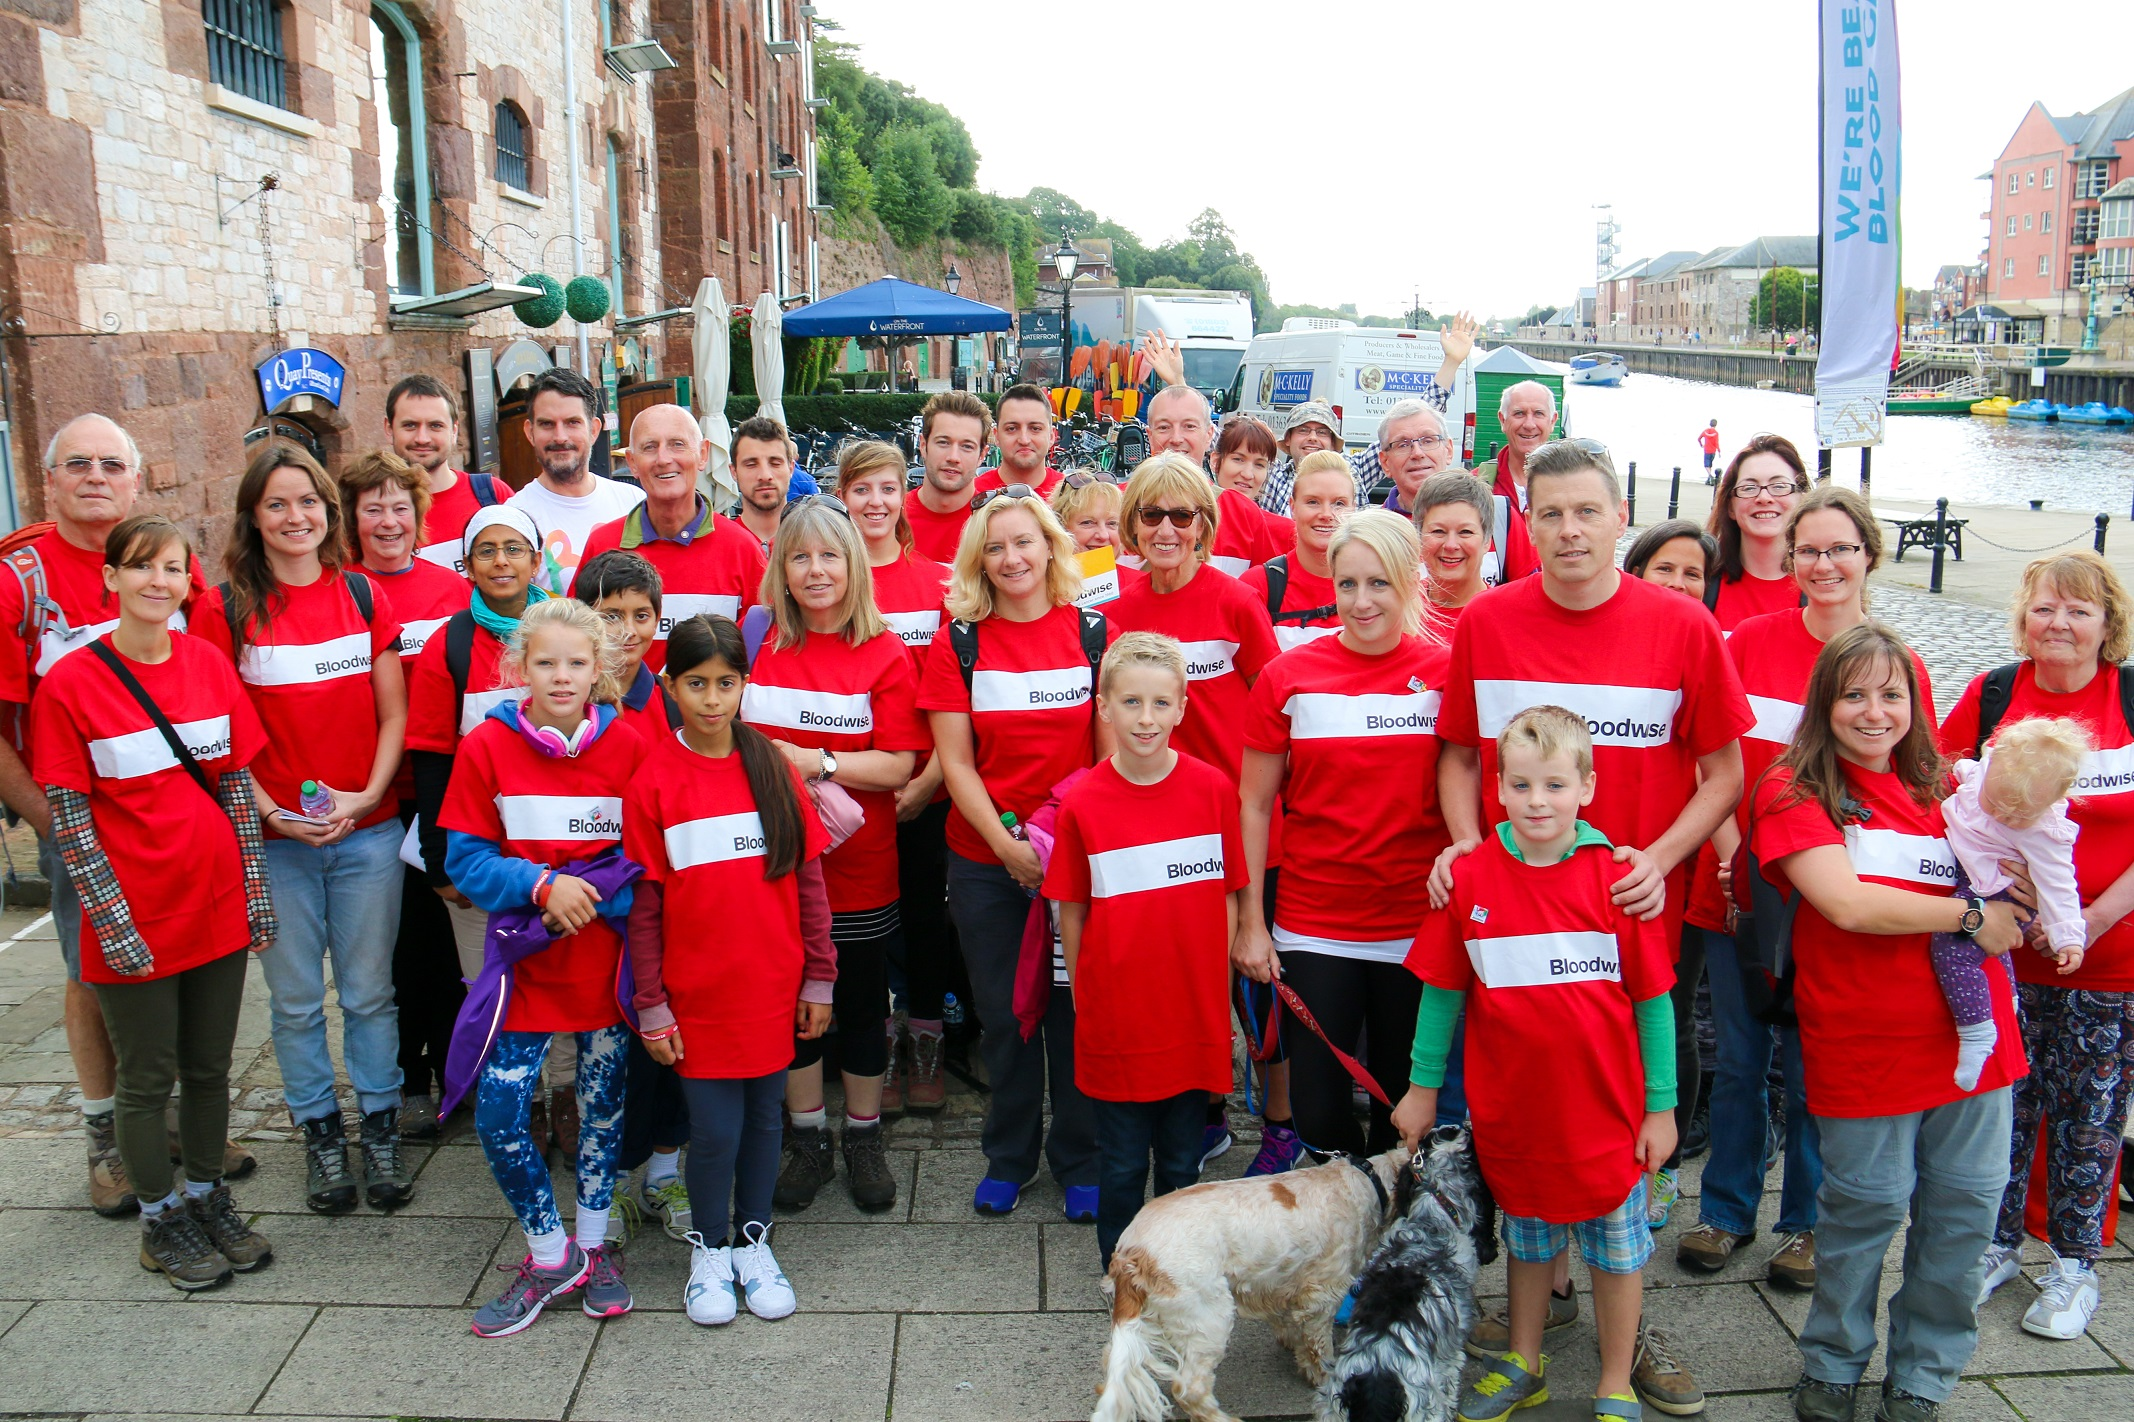 Bloodwise Exeter to Exmouth Walk